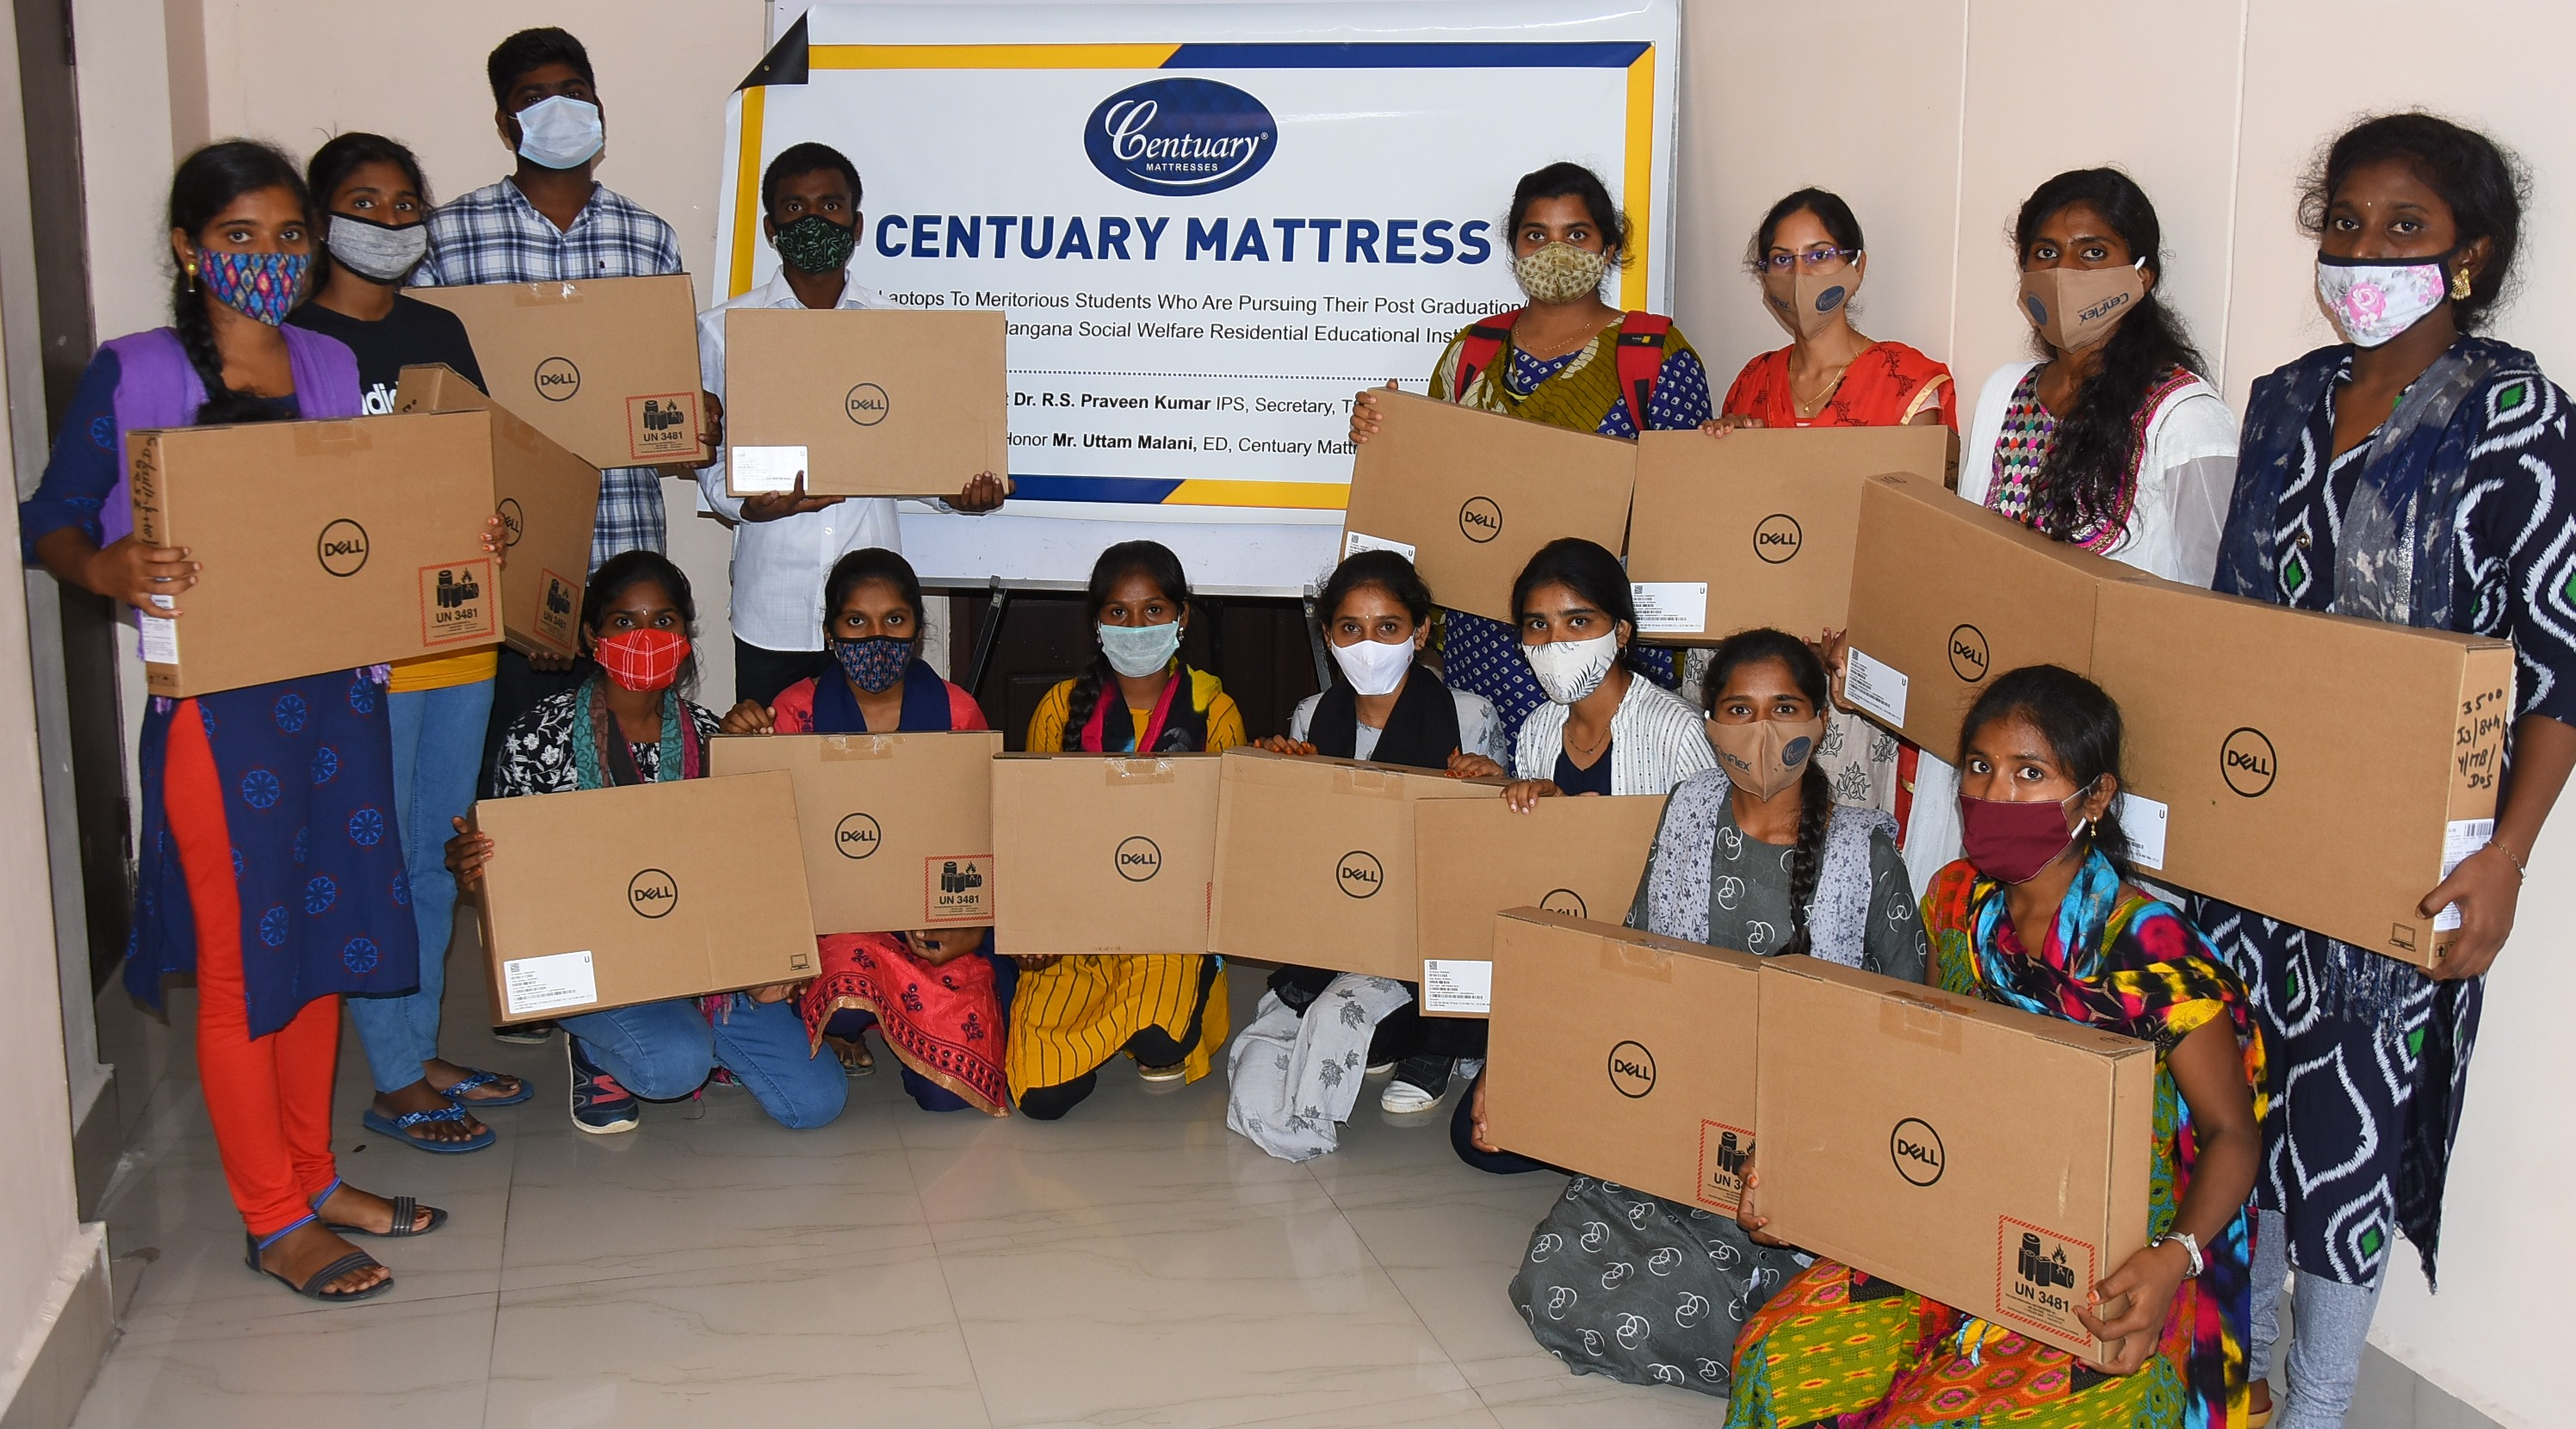 Shree Malani Group extends support to the underprivileged through its Community Development Initiatives